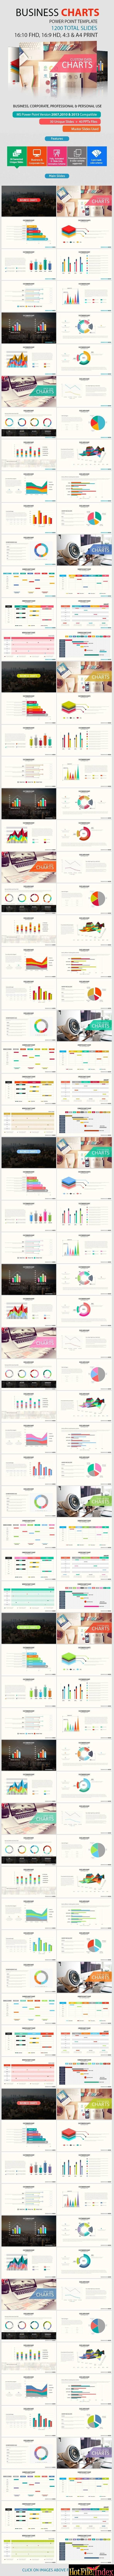 GraphicRiver   Business Charts Power Point Presentation From HotFileIndex